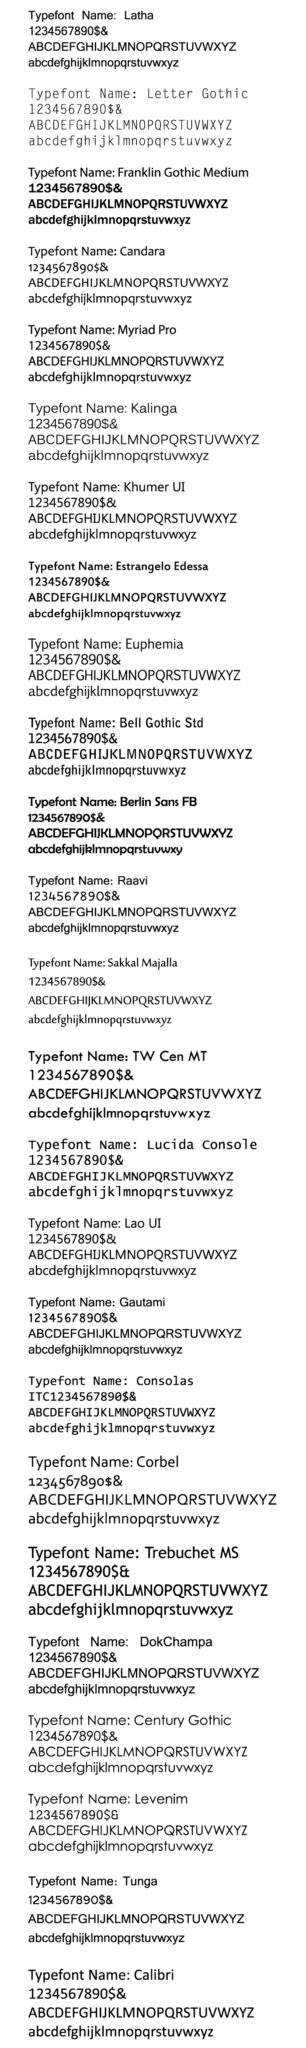 ideal Typestyles for brands